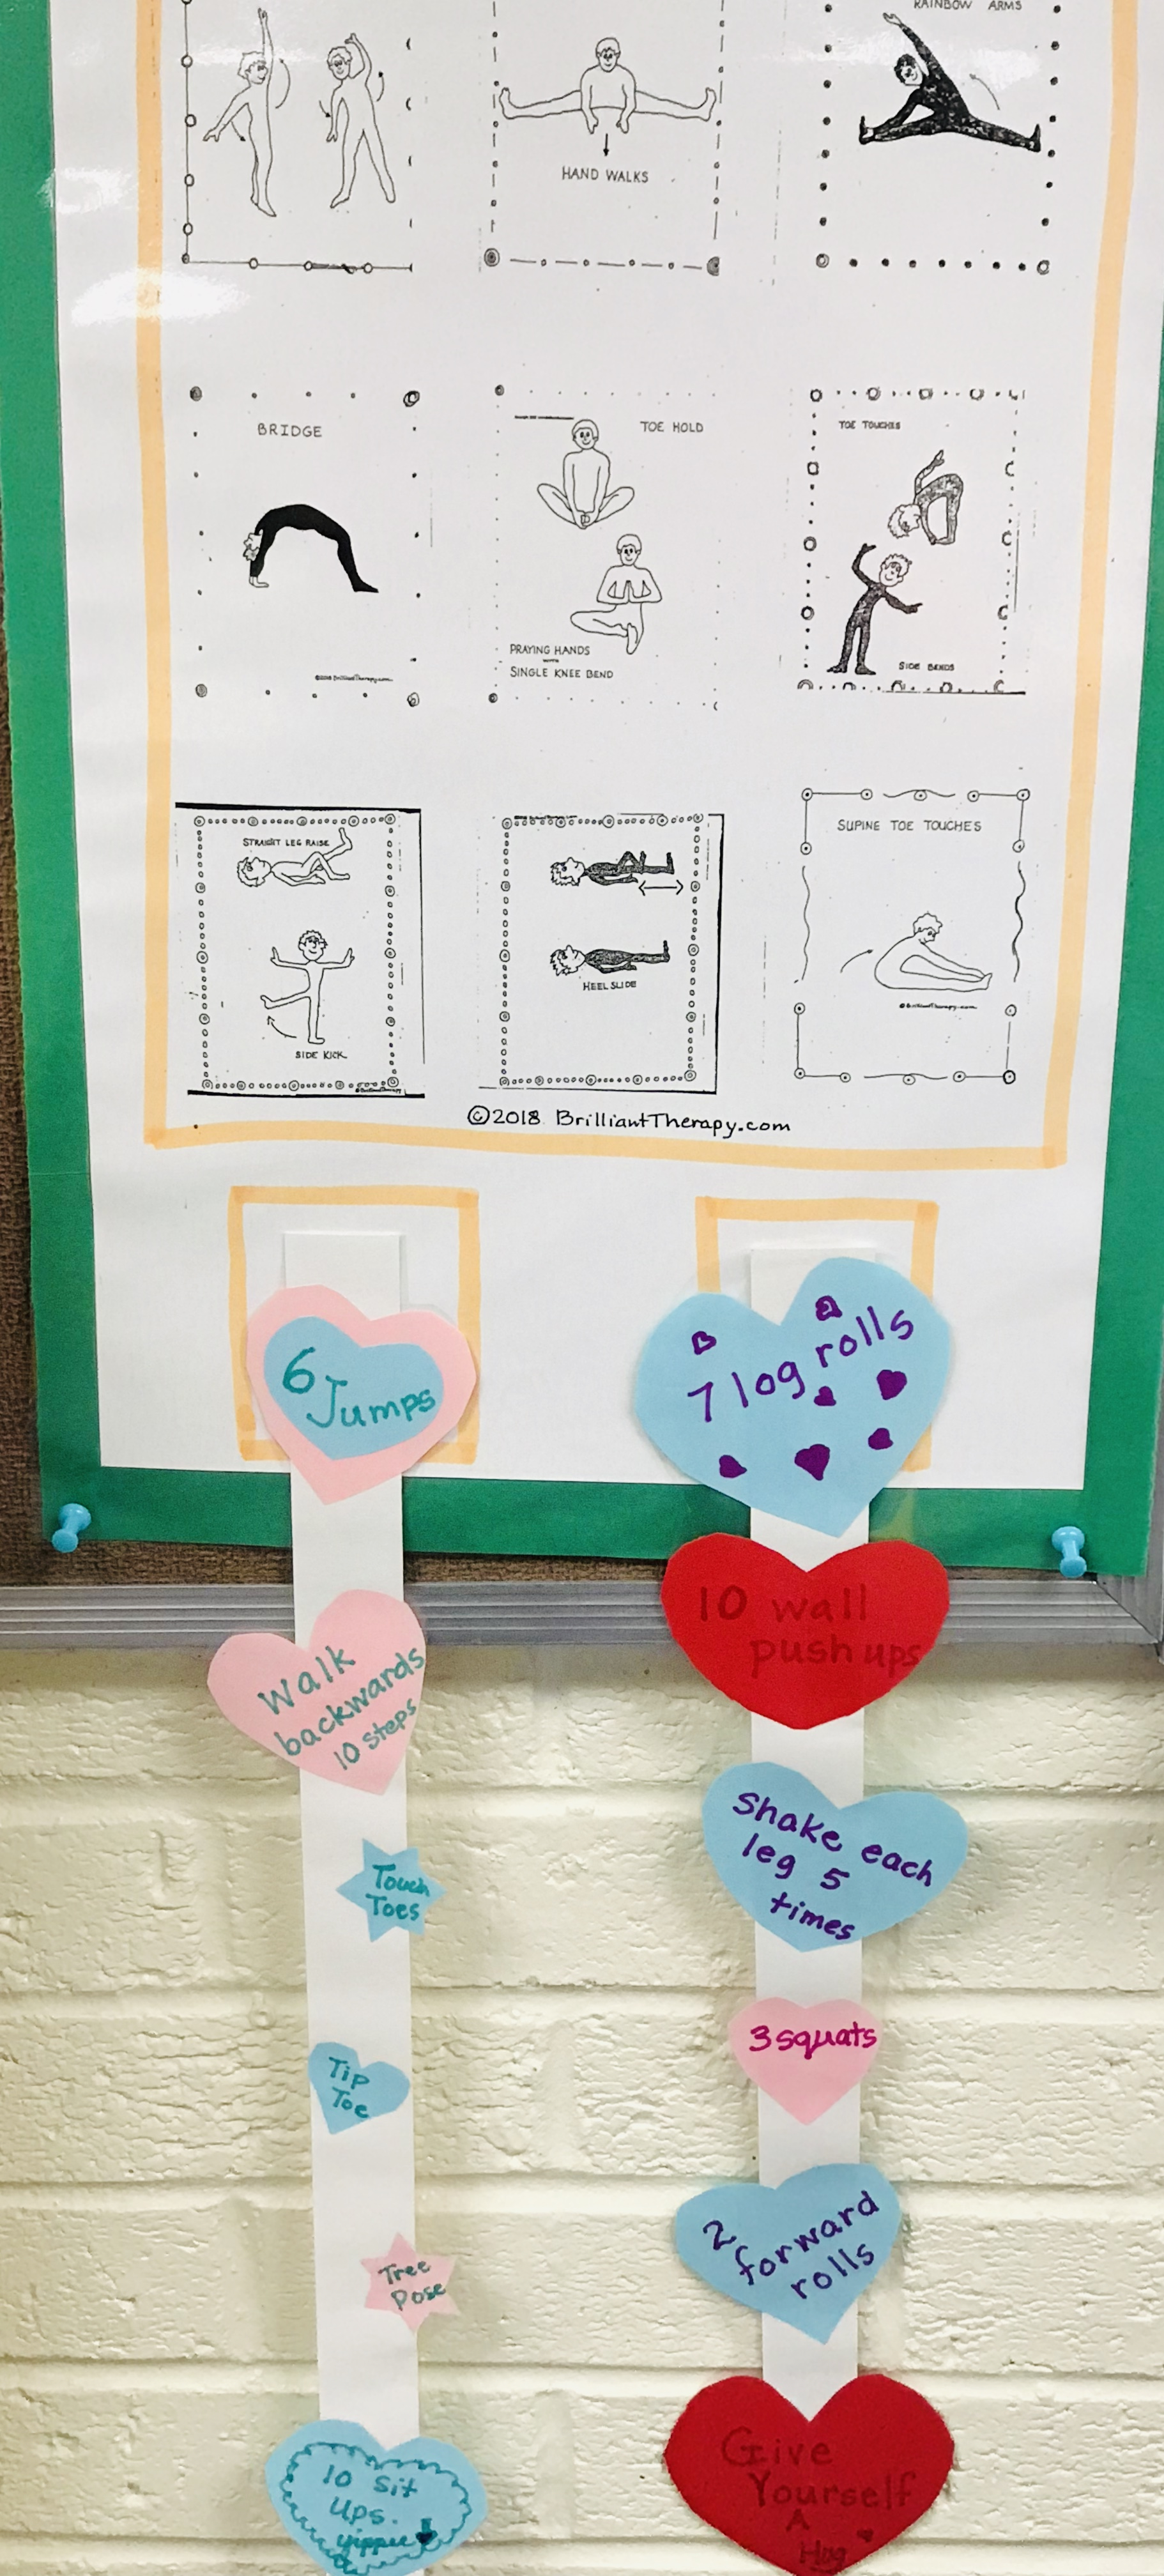 Displayed striped hearts with exercises